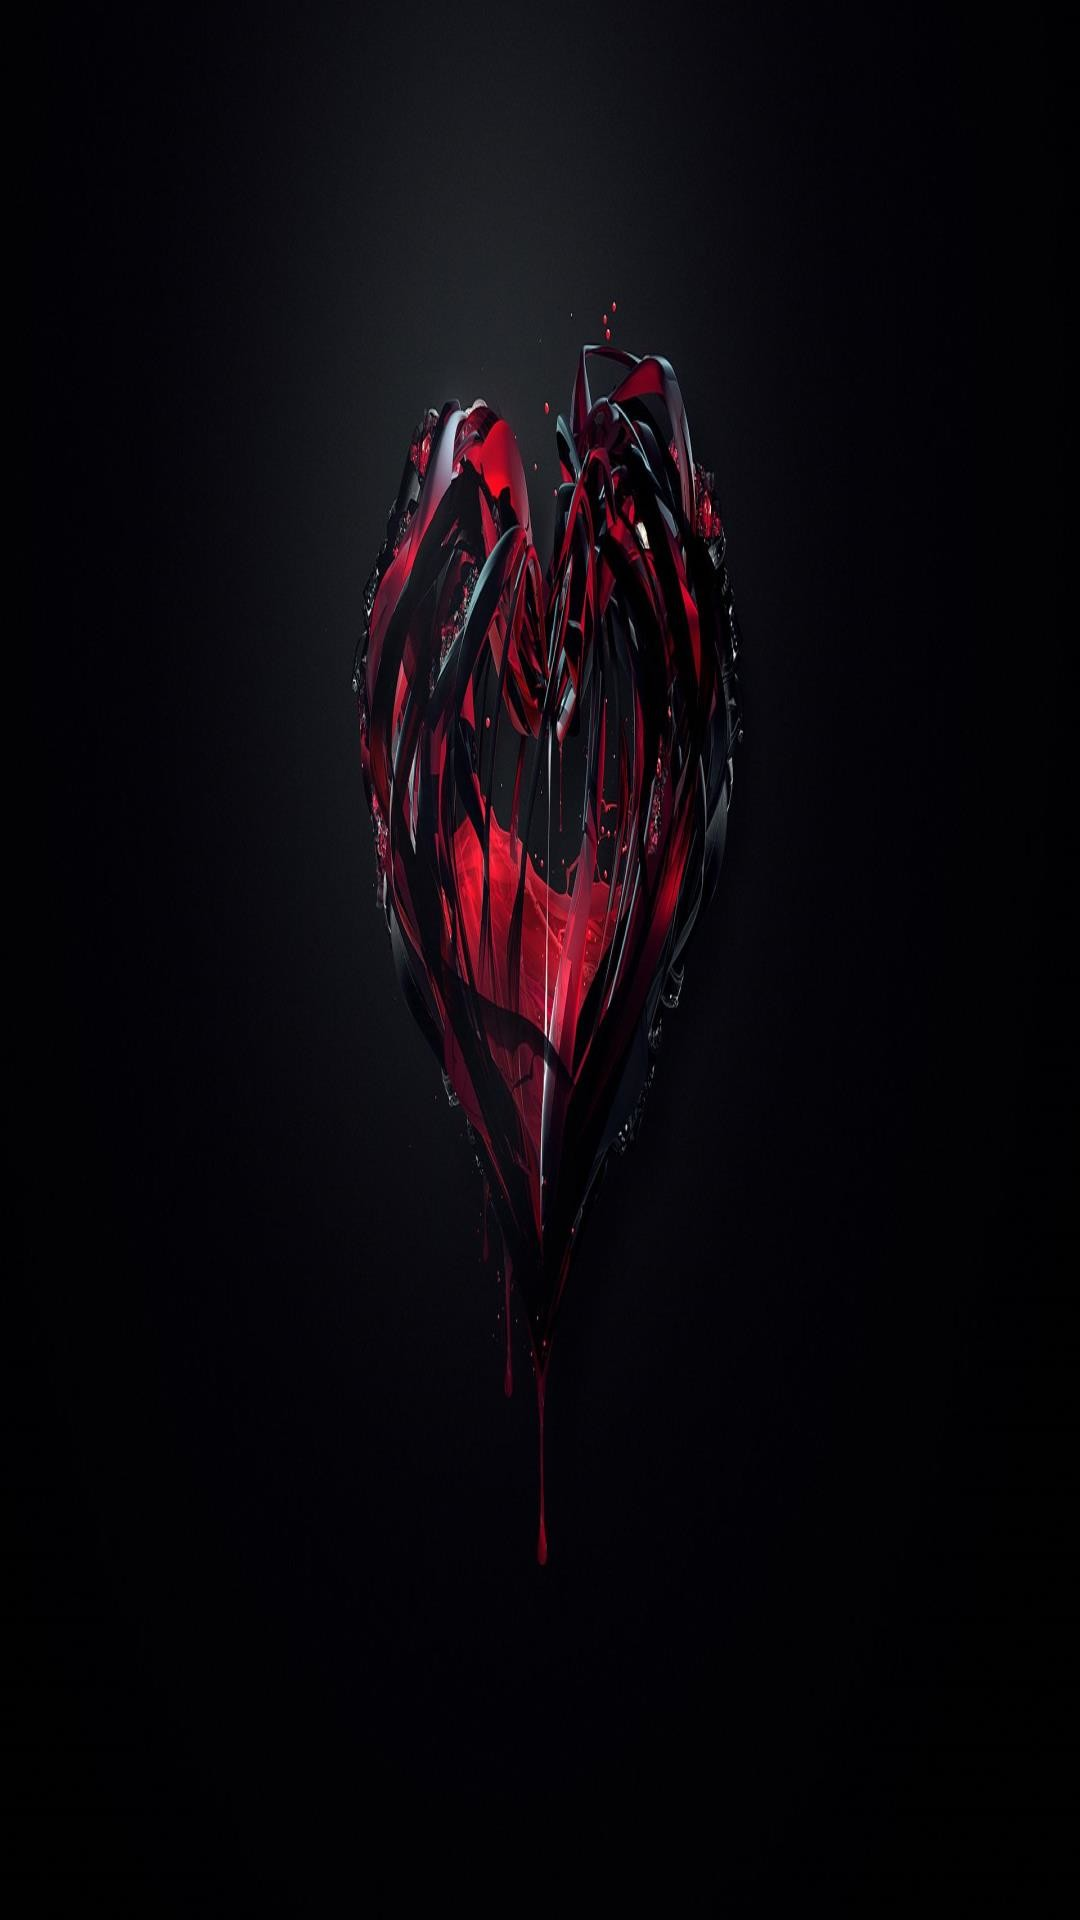 Black and Red Heart Wallpaper (61+ images)